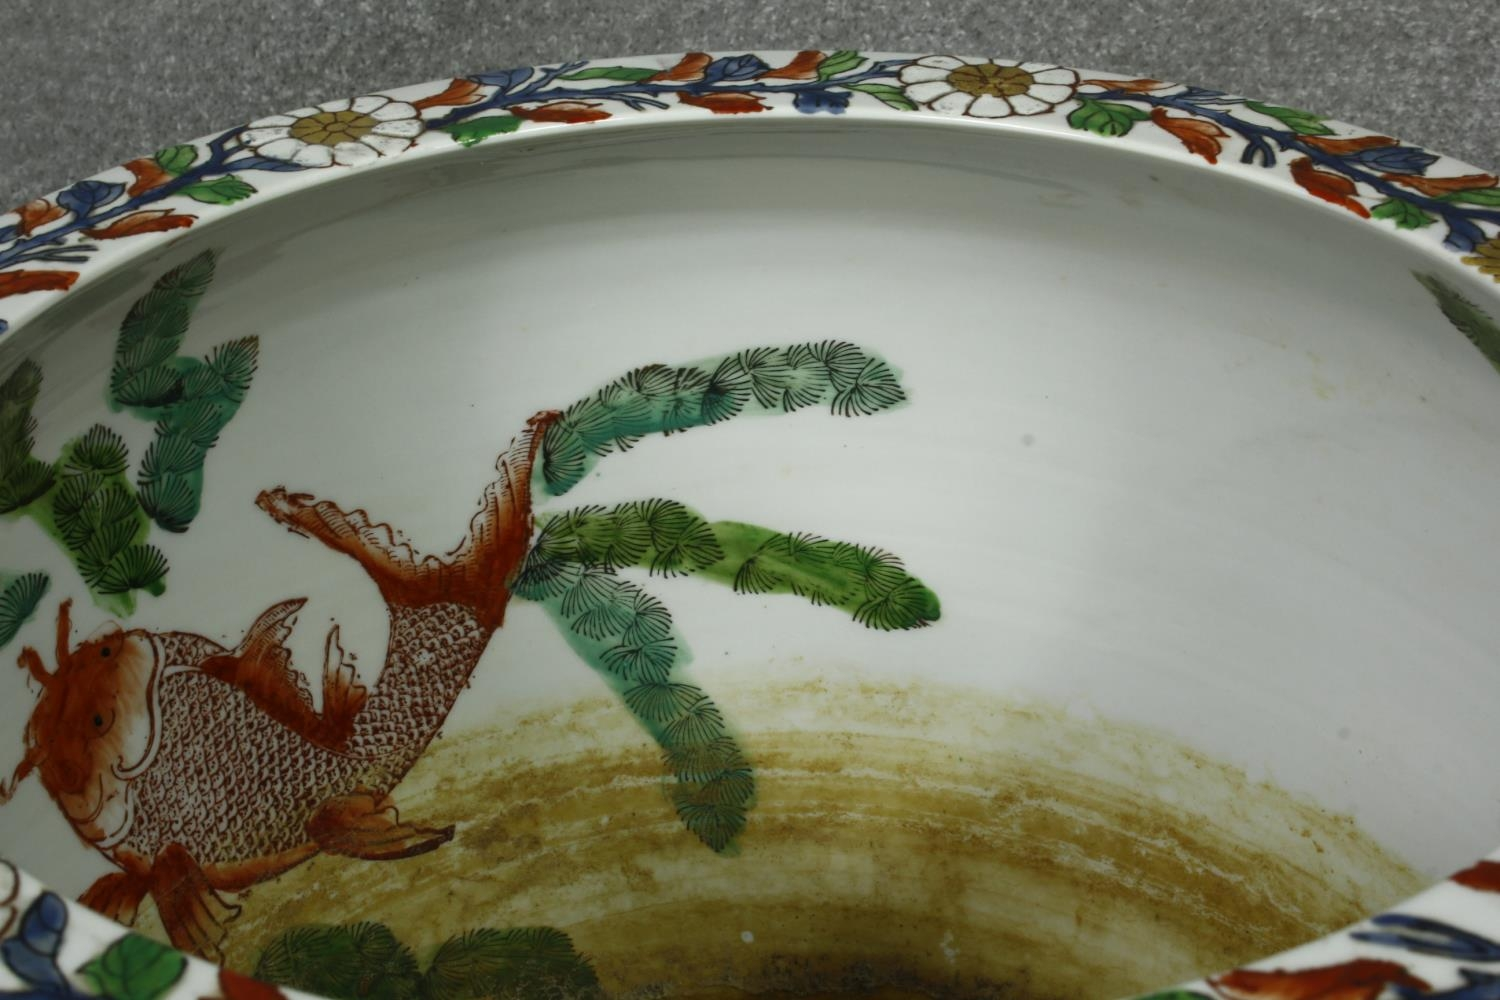 A pair of early 20th century glazed Chinese Imari ceramic planters/fish bowls on carved hardwood - Image 6 of 11